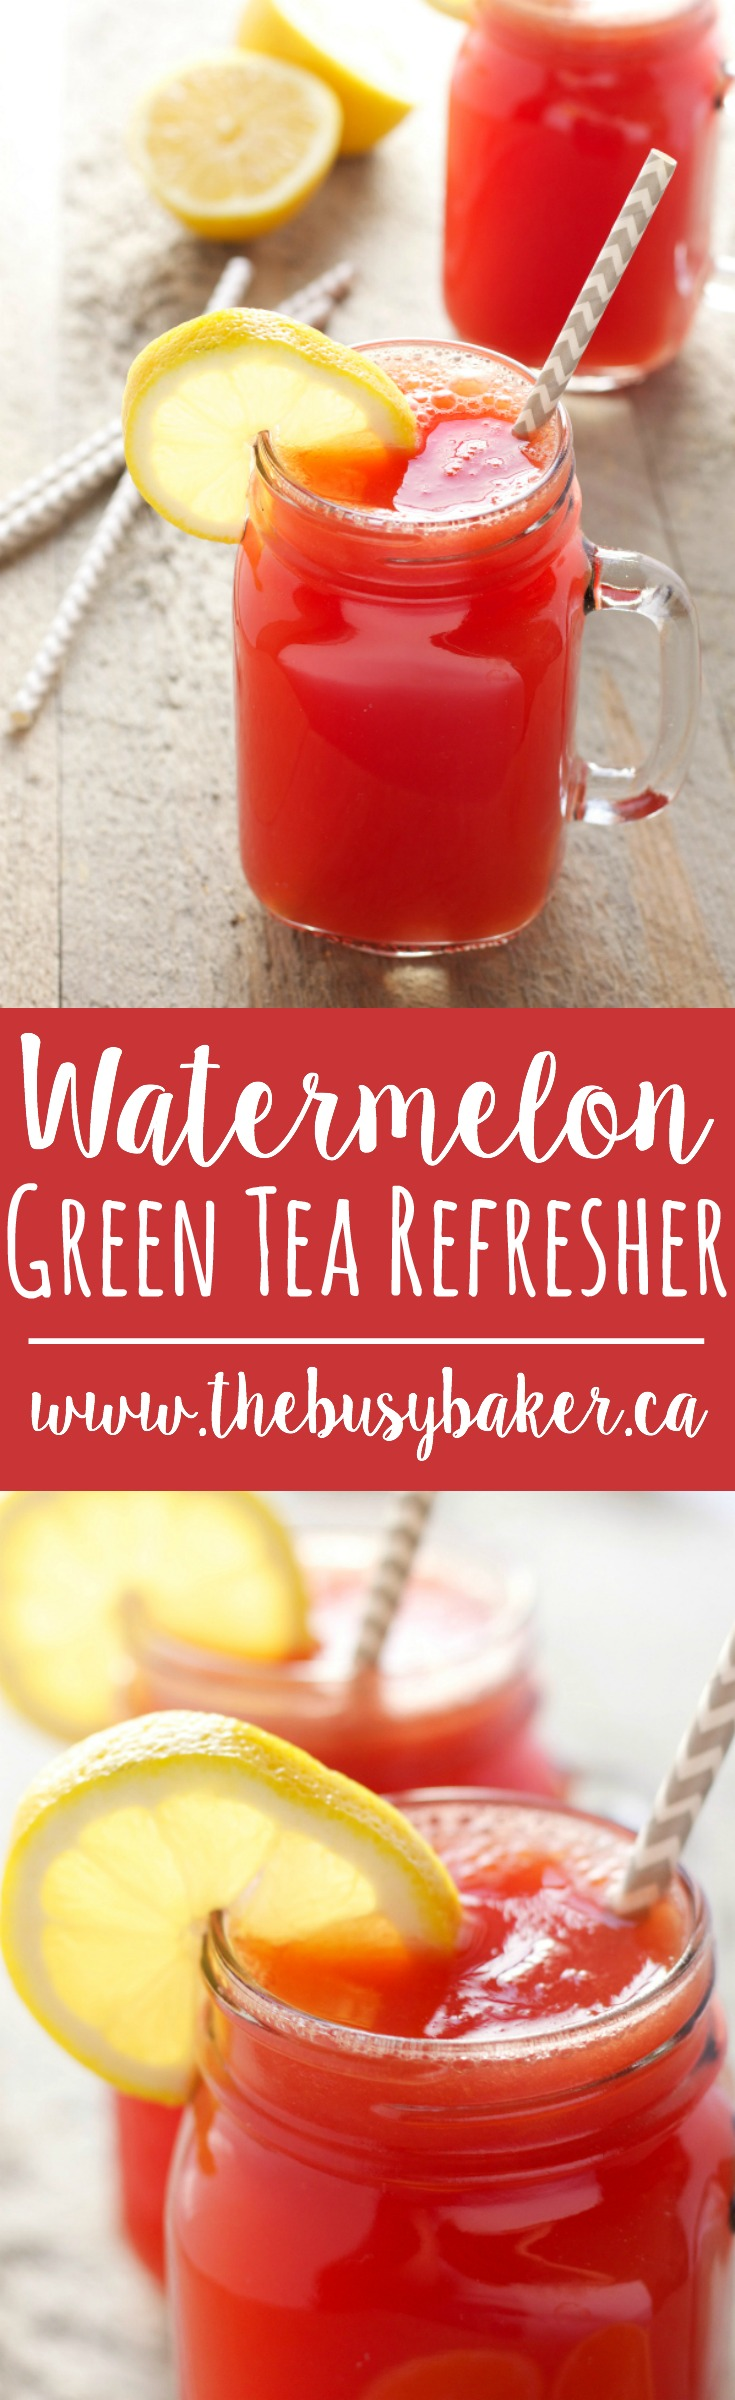 This Watermelon Green Tea Refresher drink is a delicious healthy alcohol-free cocktail, featuring fresh watermelon, lemon, and green tea! Recipe from thebusybaker.ca! via @busybakerblog